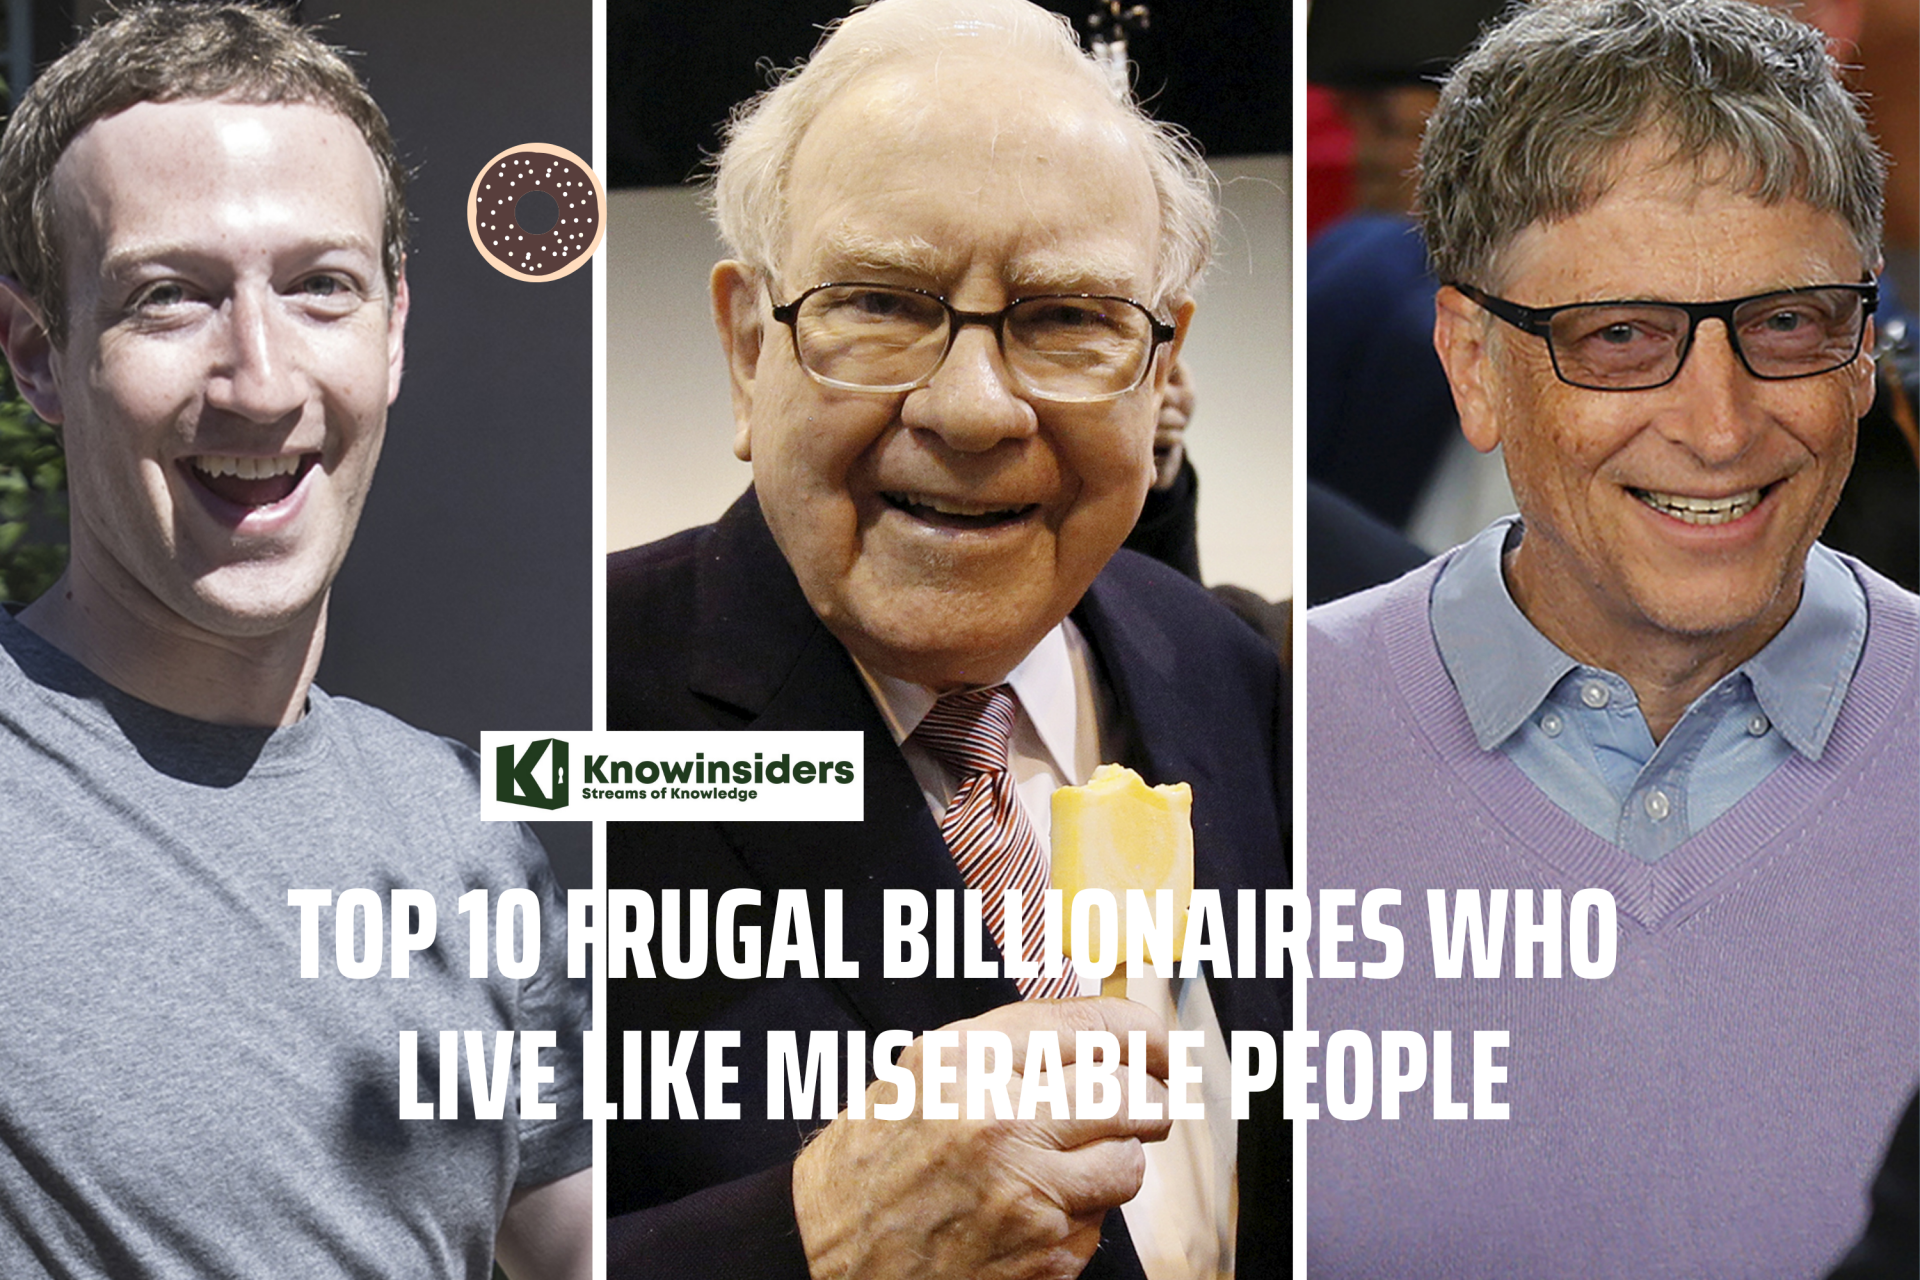 Top 10 Frugal Billionaires Who Live Like Miserable People